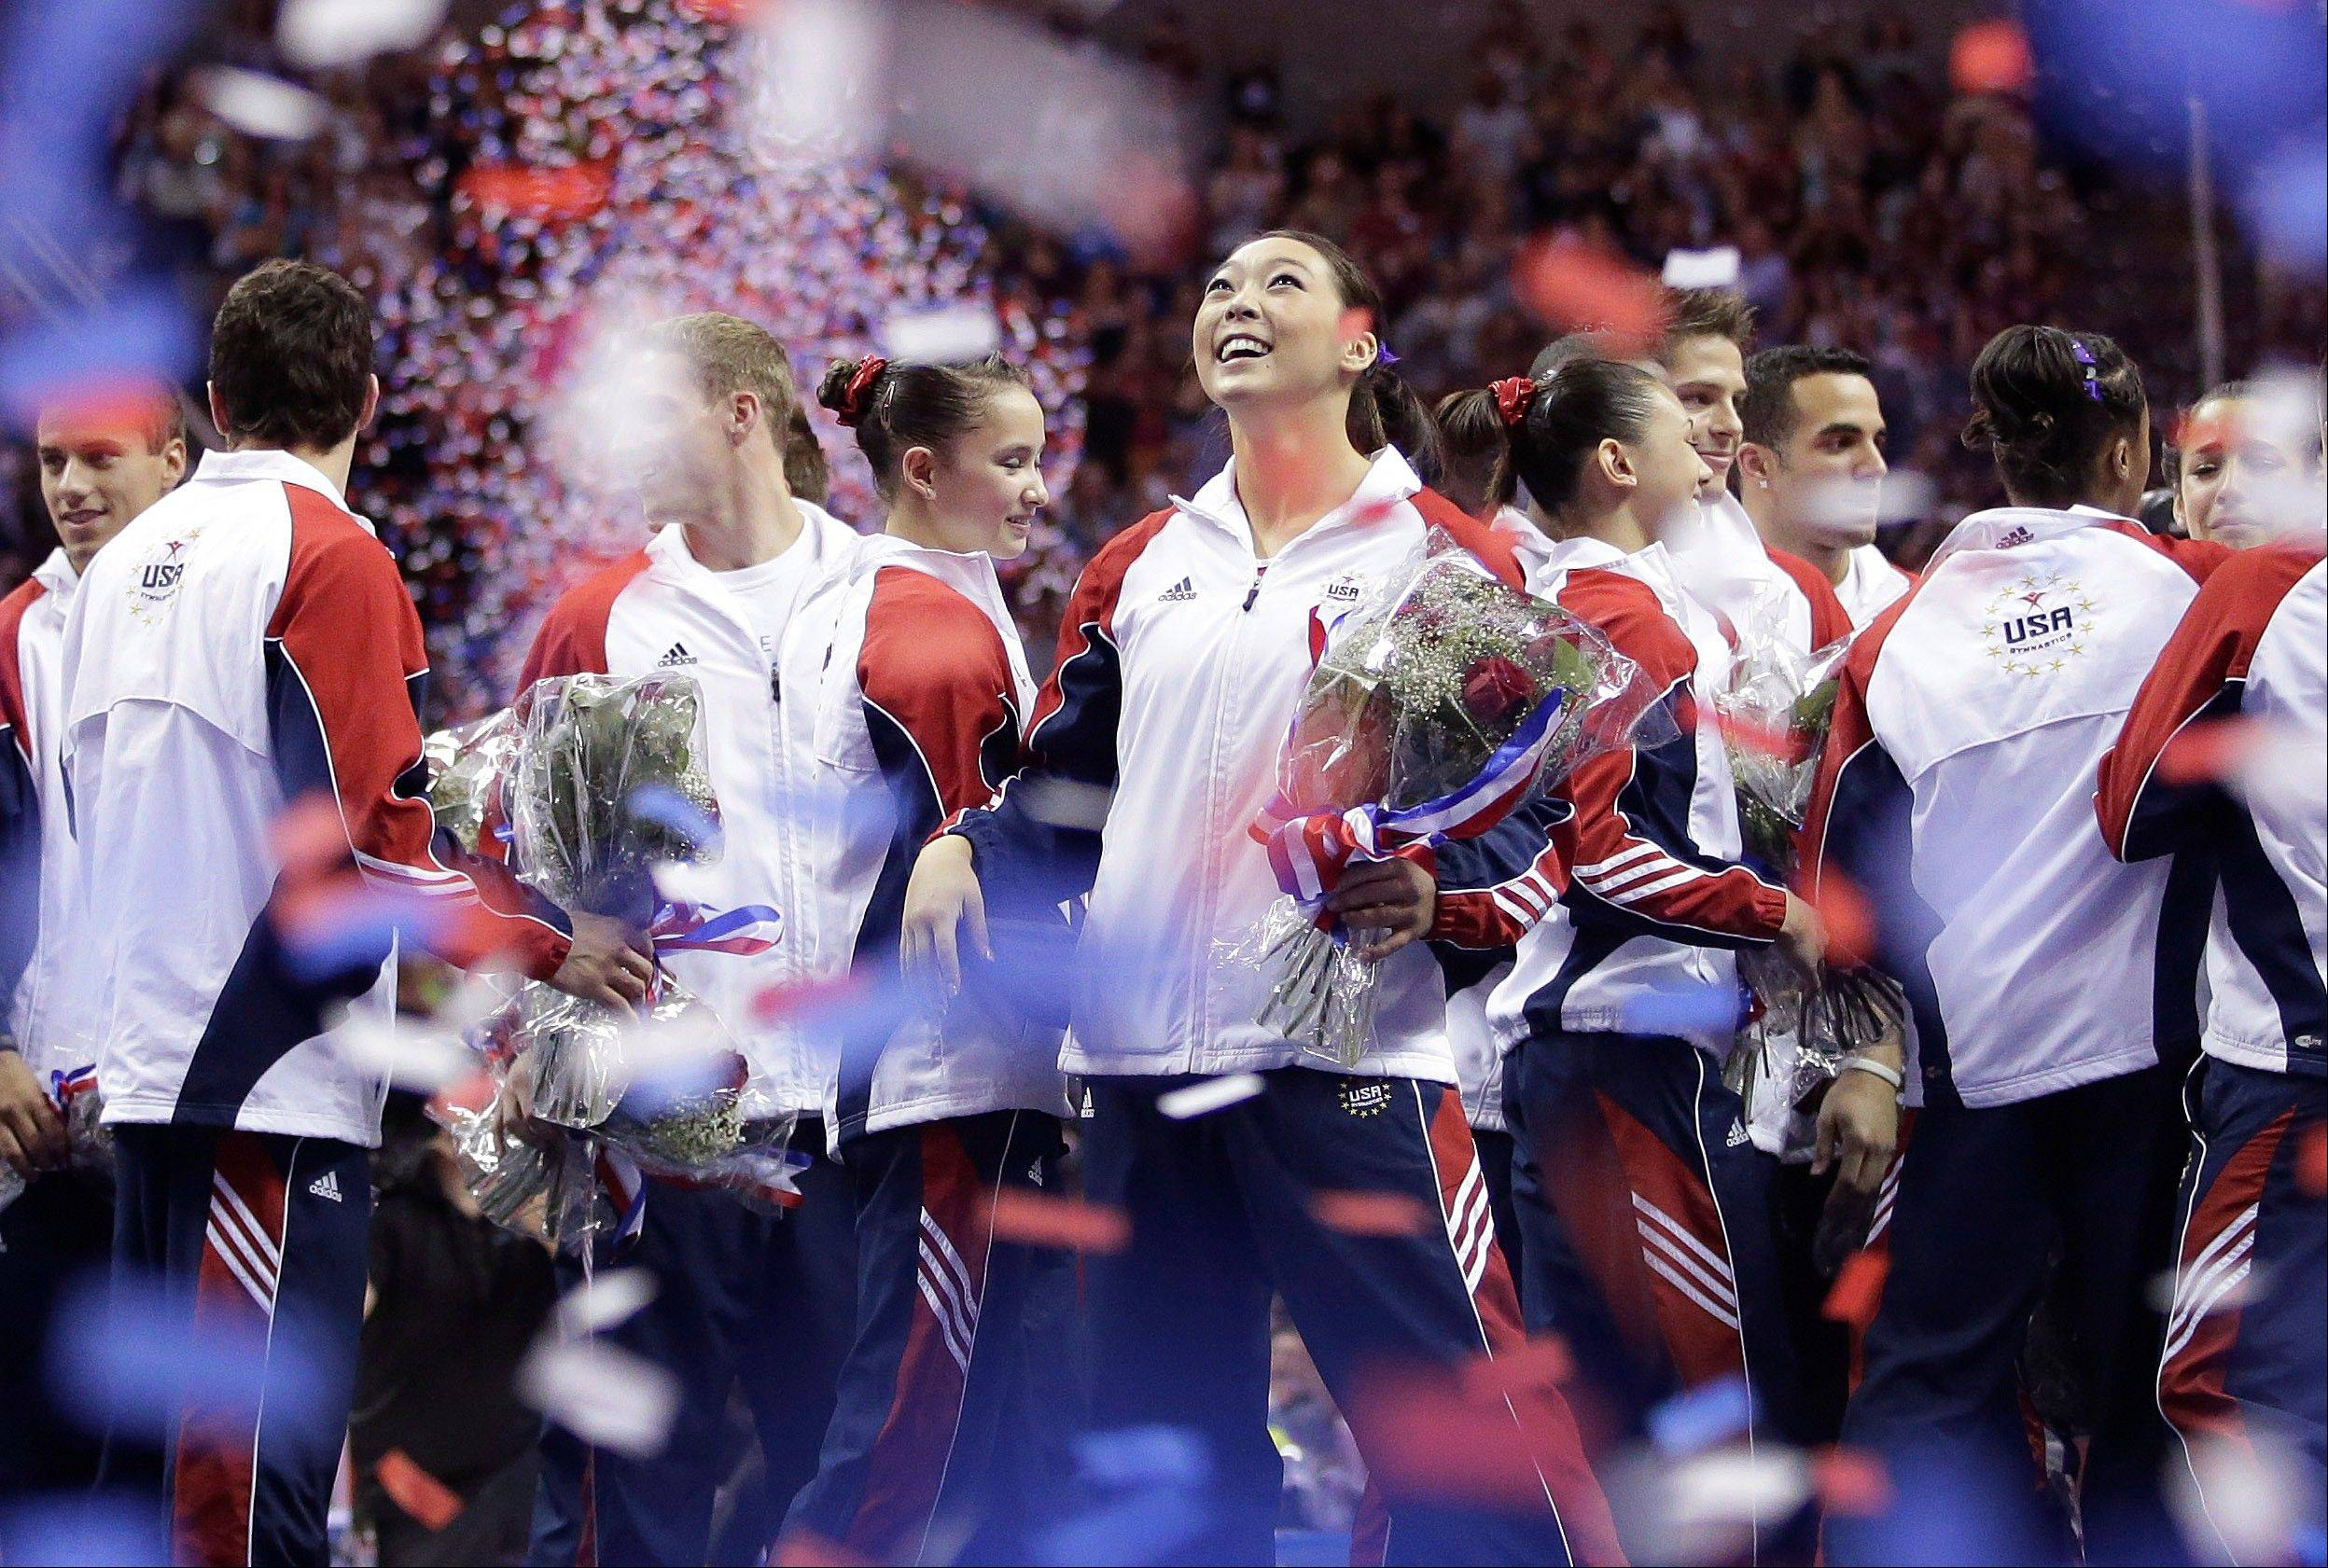 Anna Li reacts as confetti falls after being named as an alternate to the U.S. Olympic gymnastics team after the final round of the women's Olympic gymnastics trials, Sunday, July 1, 2012, in San Jose, Calif.